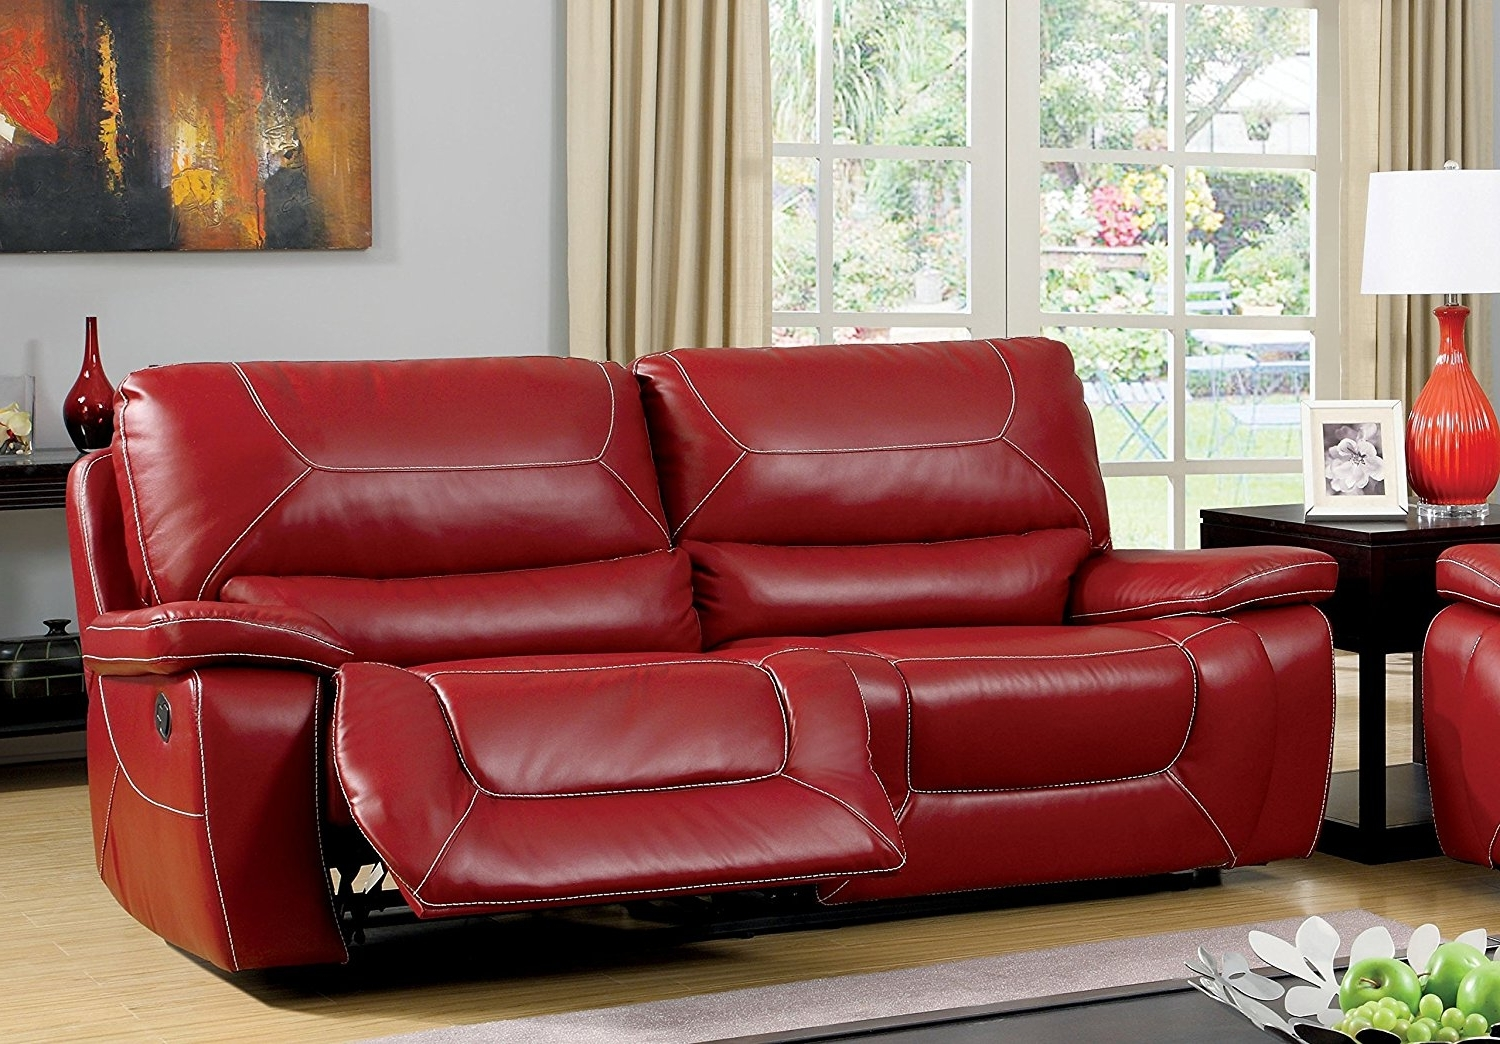 Super Red Leather Reclining Sofa And Loveseat 73 For Sofa Room With Trendy Red Leather Reclining Sofas And Loveseats (View 12 of 15)